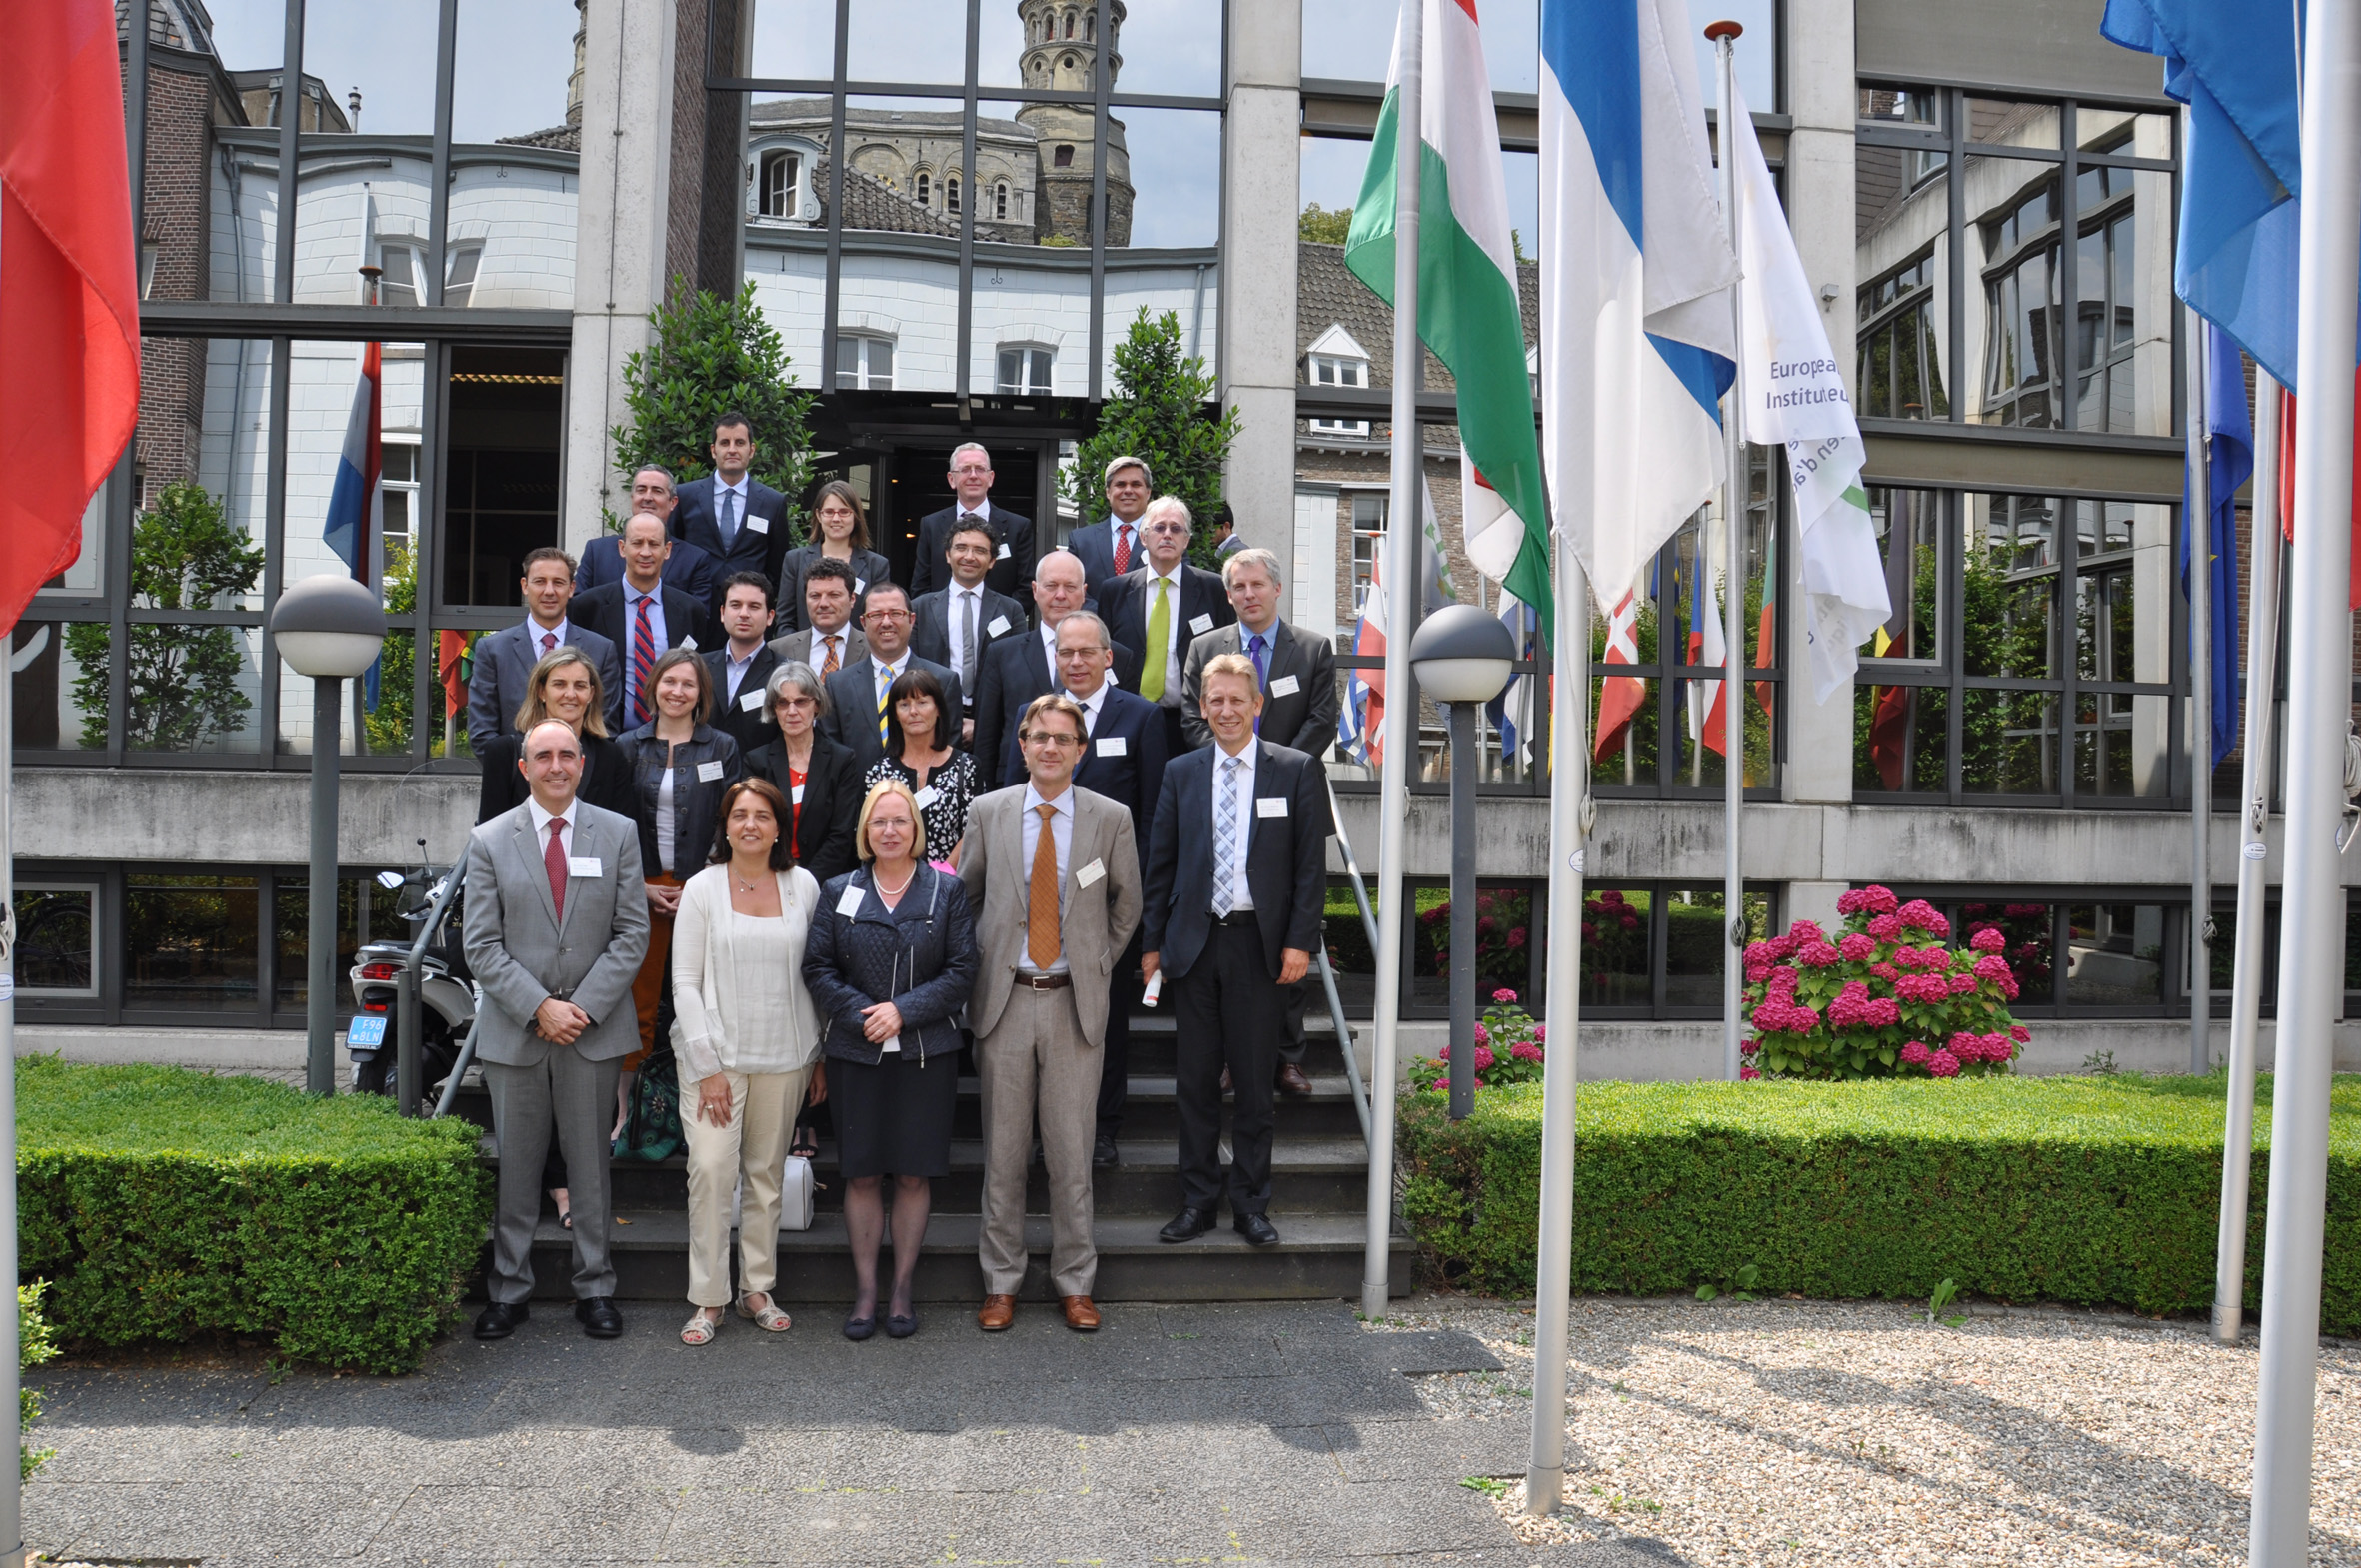 CEFG Group members_Maastricht, June 2014